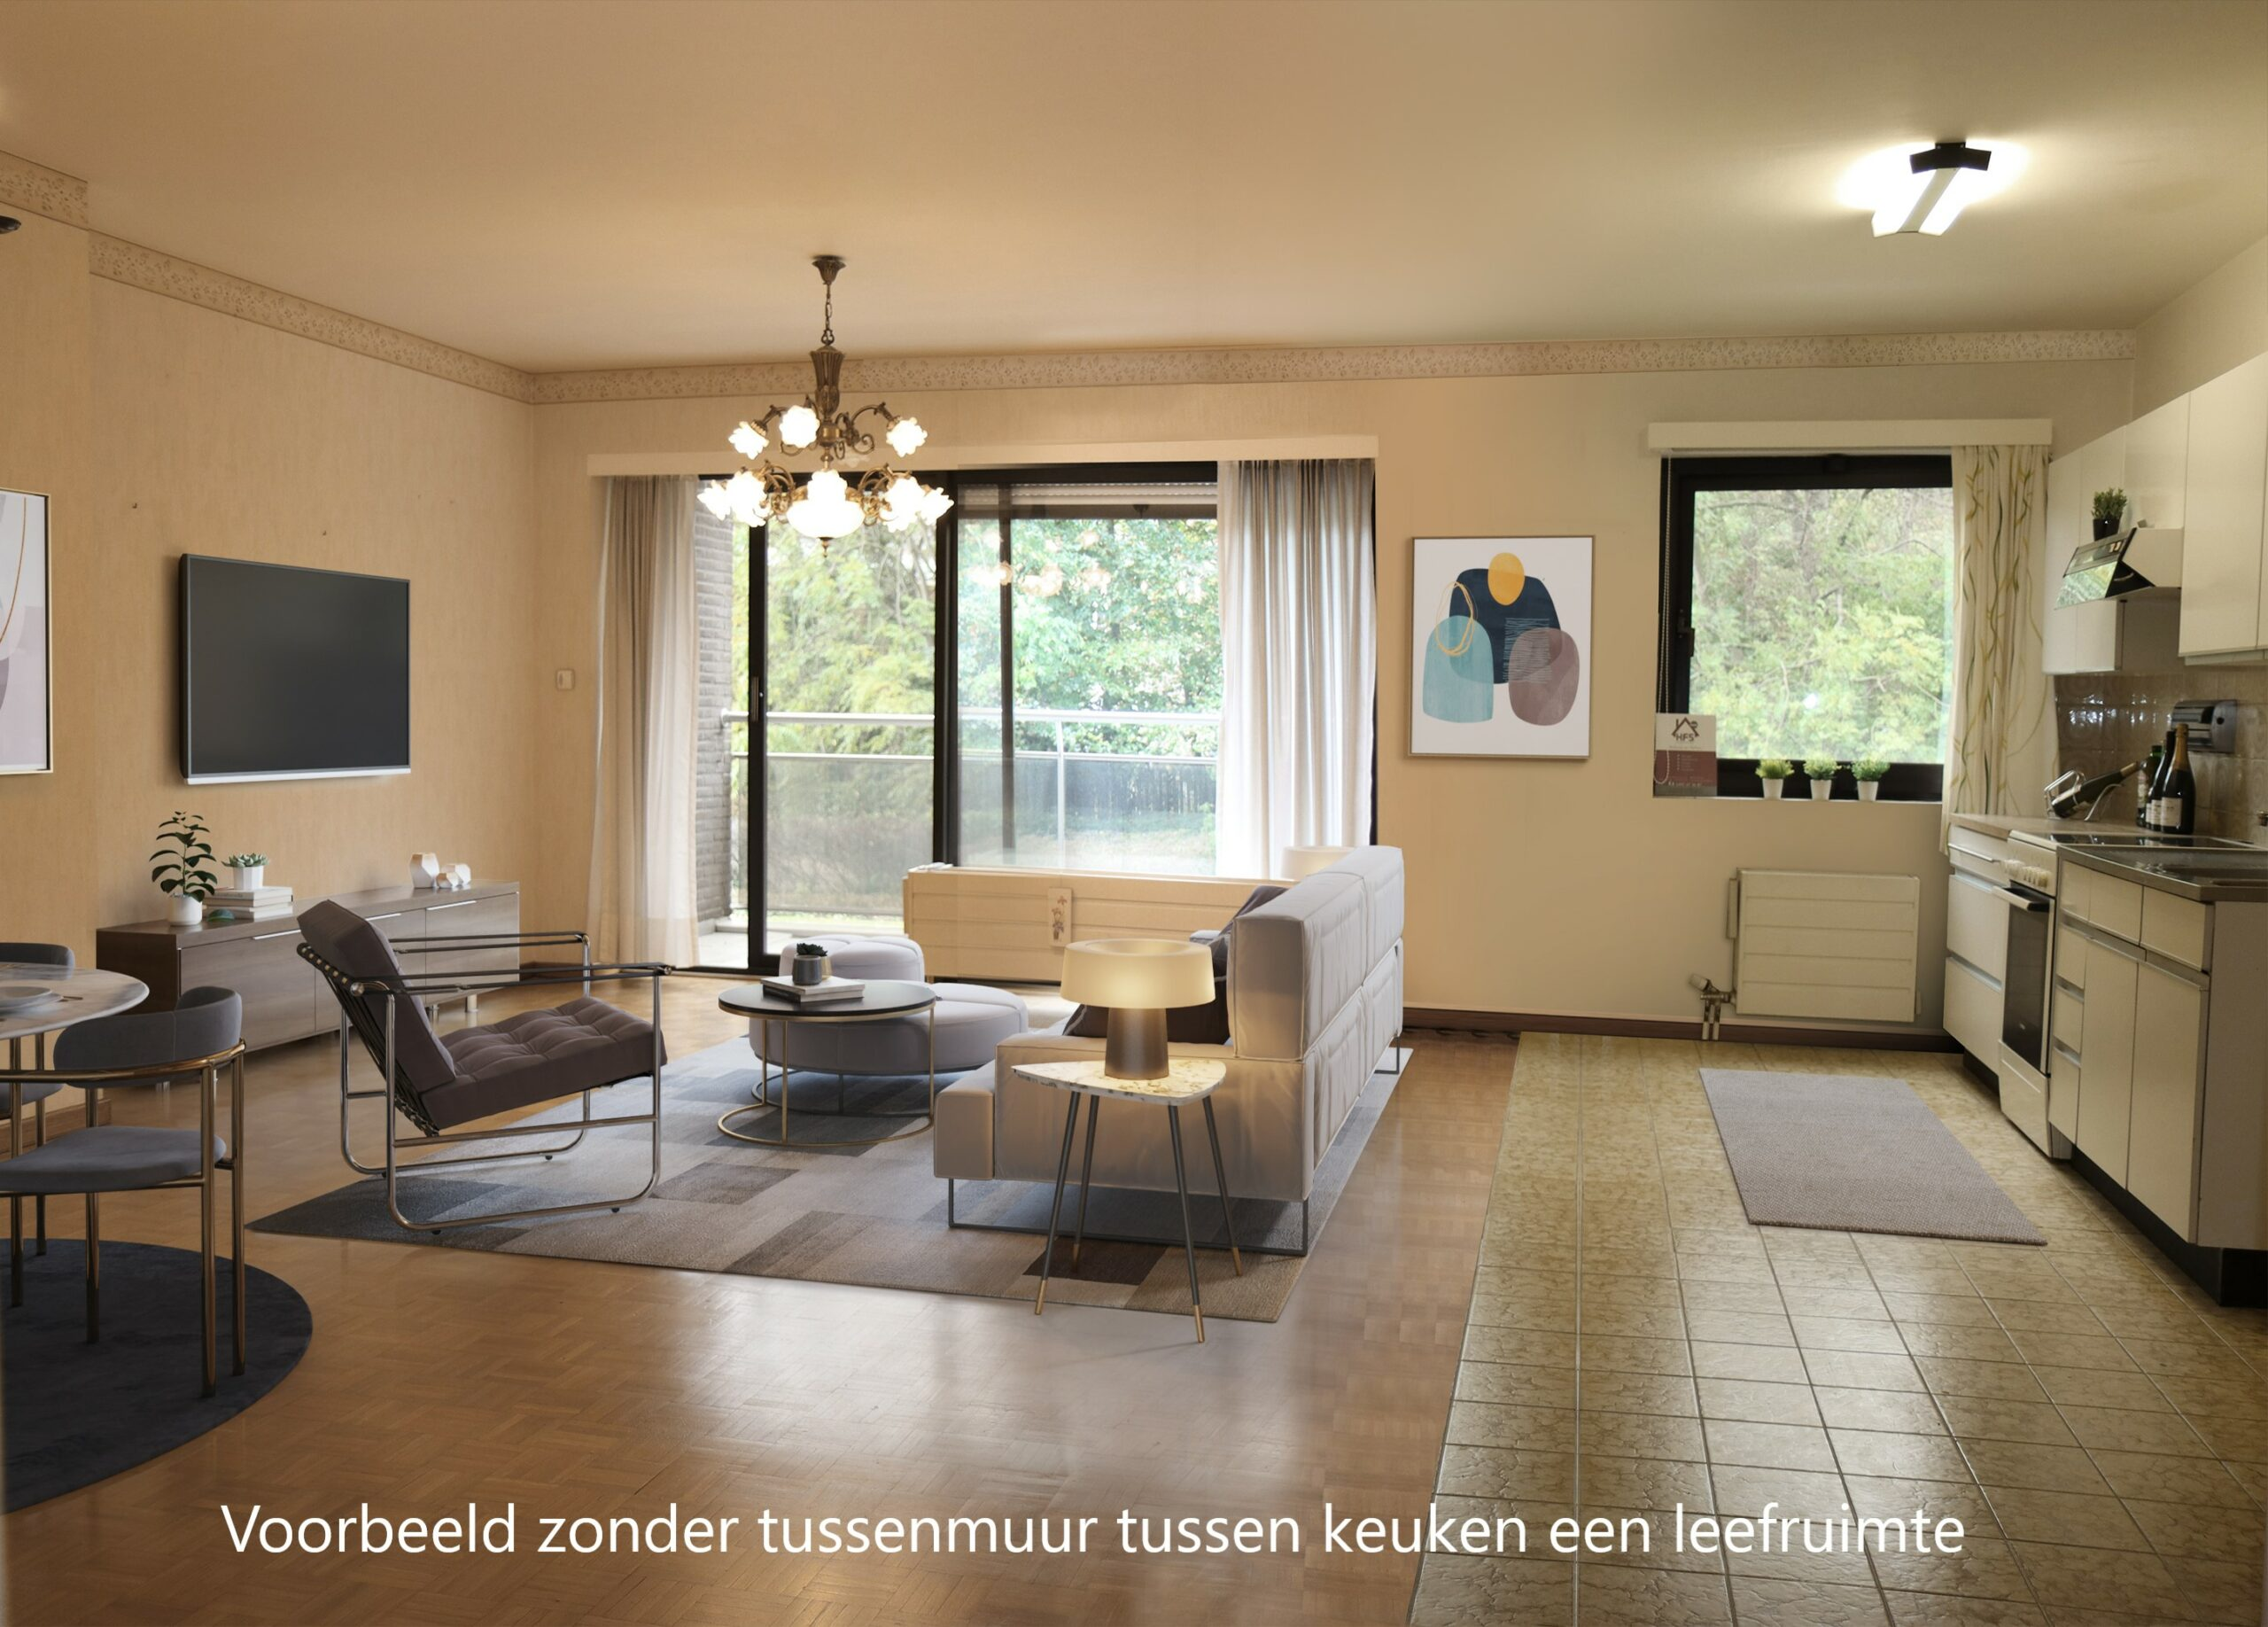 0.1 STAGED LIVING EN KEUKEN